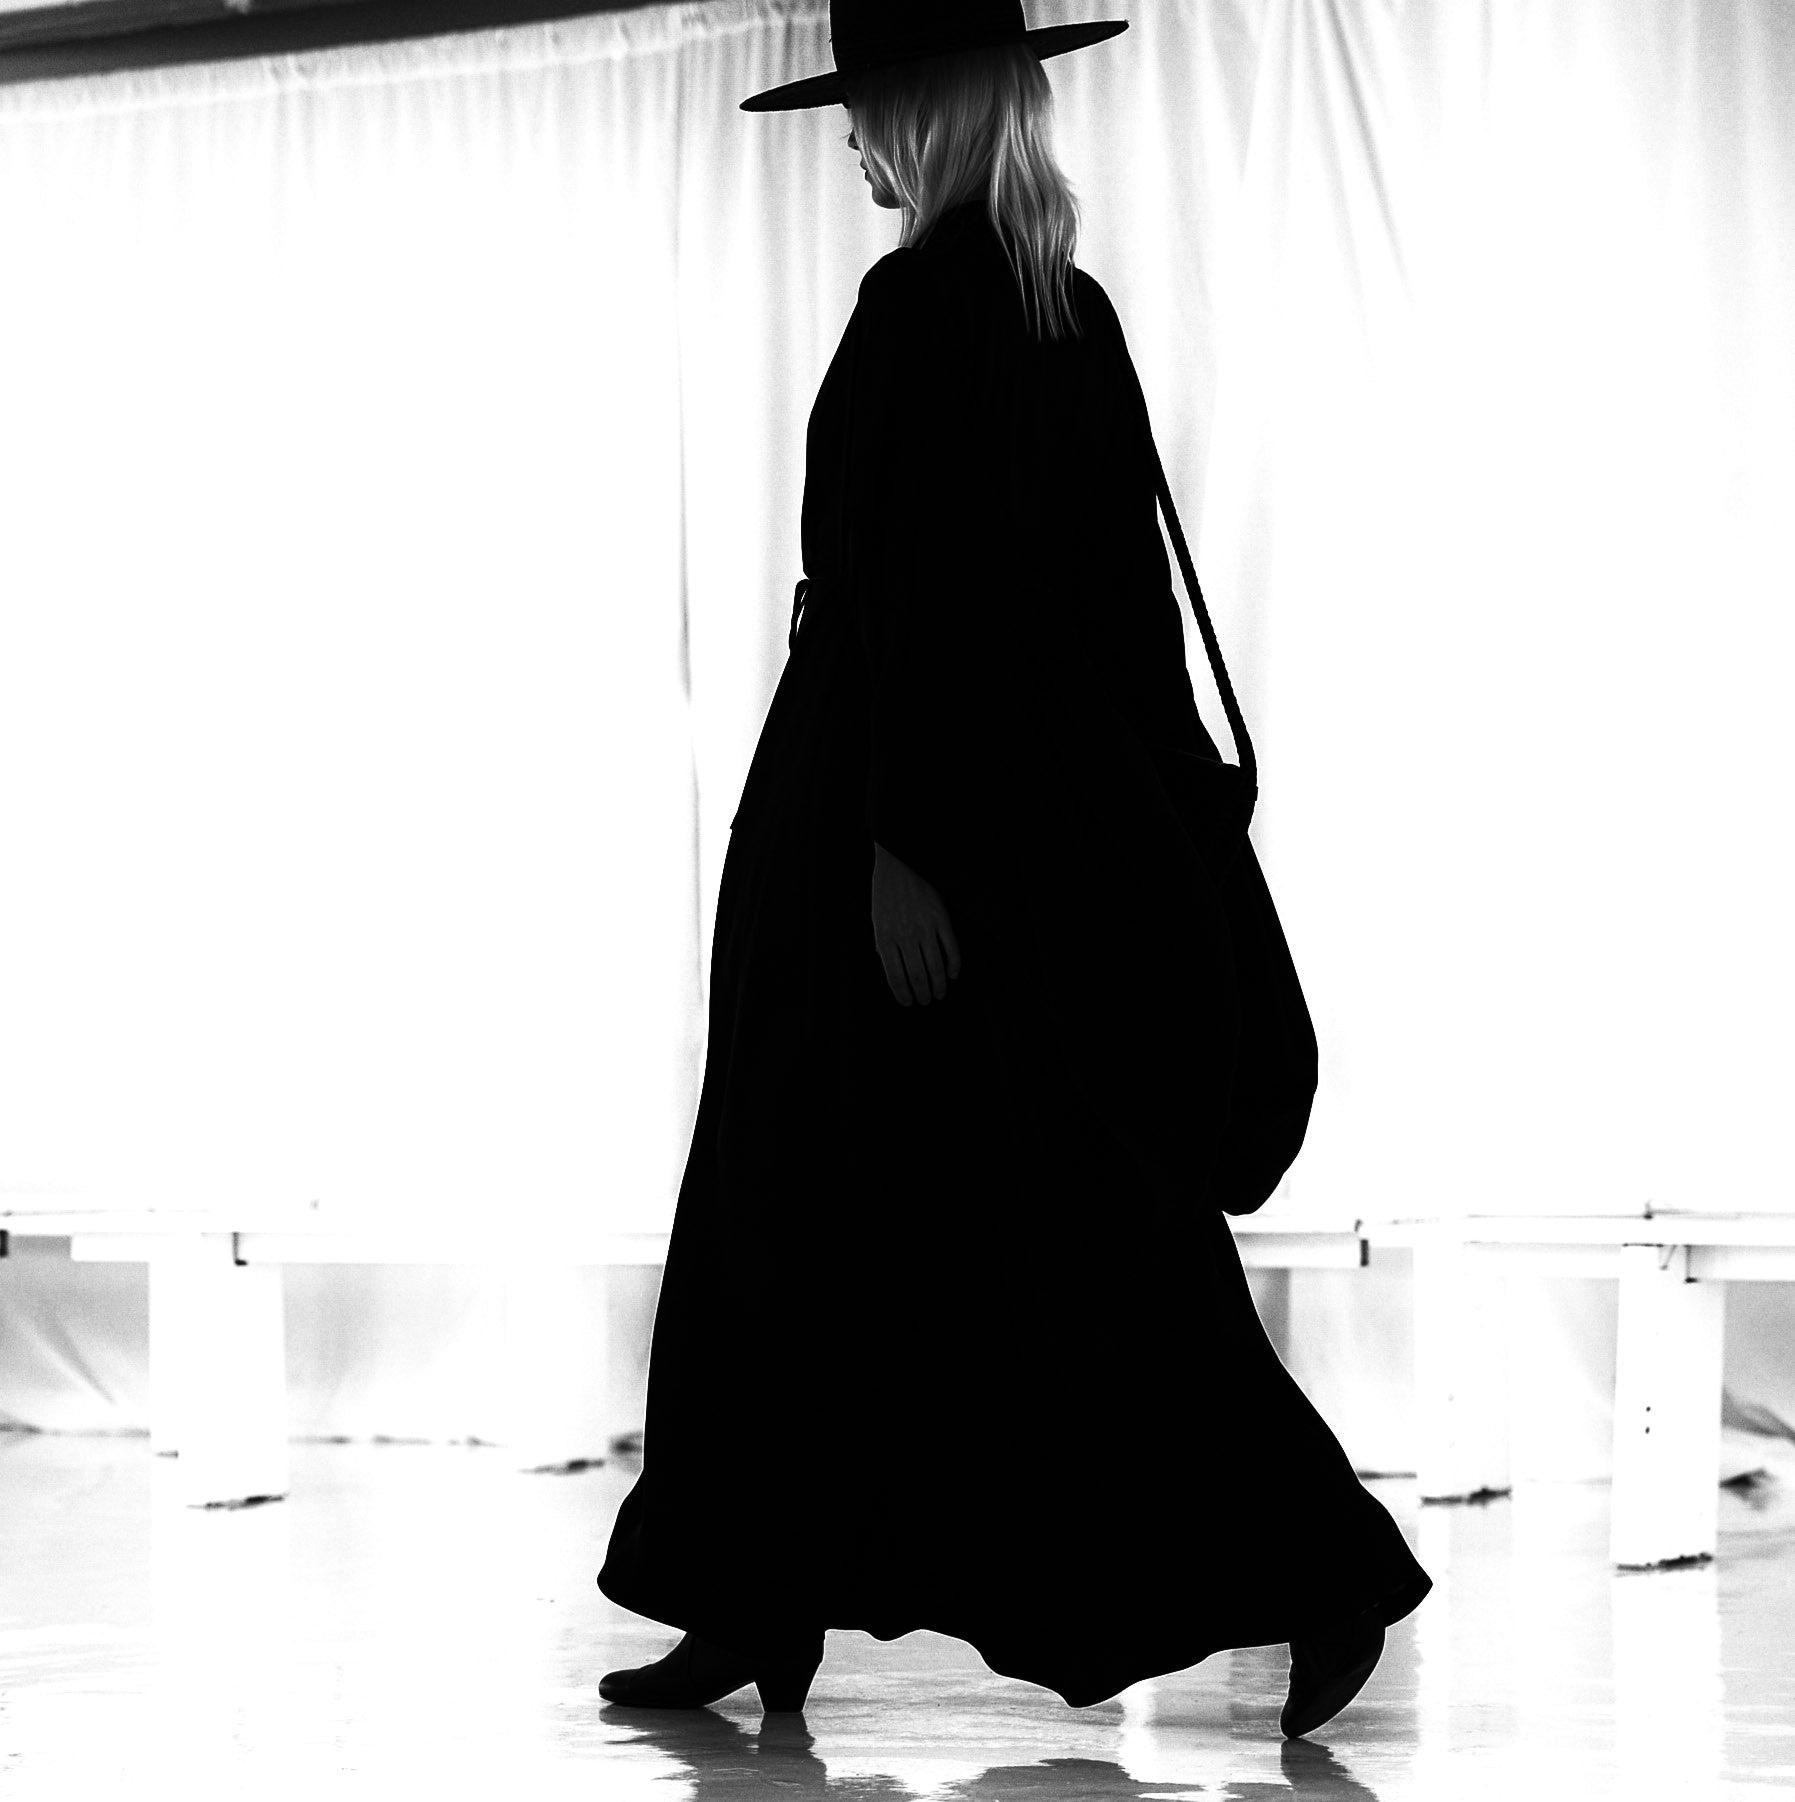 Ragnhild IMG Model Wendy Nichol Clothing Designer Fashion Runway Show SS16 Guardians of Light Handmade in NYC Silk Satin Kimono Large Sleeve Witching Hour Sorceress Dress Black Straw Wide Brim Hat Basket Whip Leather Handbag Horse Hair Tassel